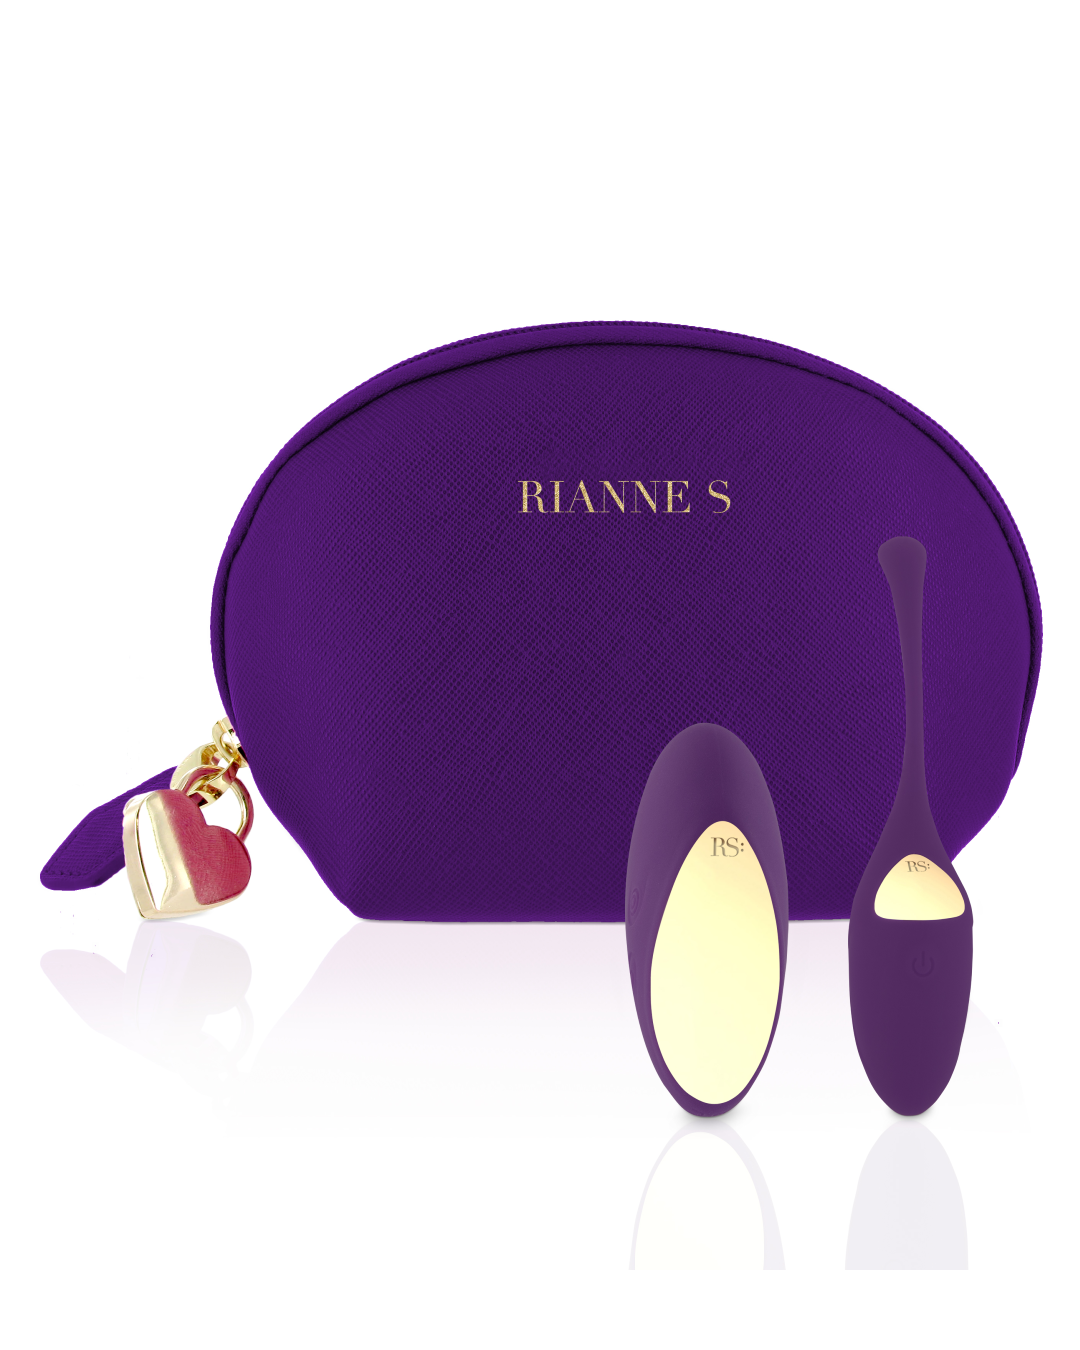 Rianne S Pulsy Playball Remote Control Kegel Exerciser - Deep Purple with matching purple makeup case